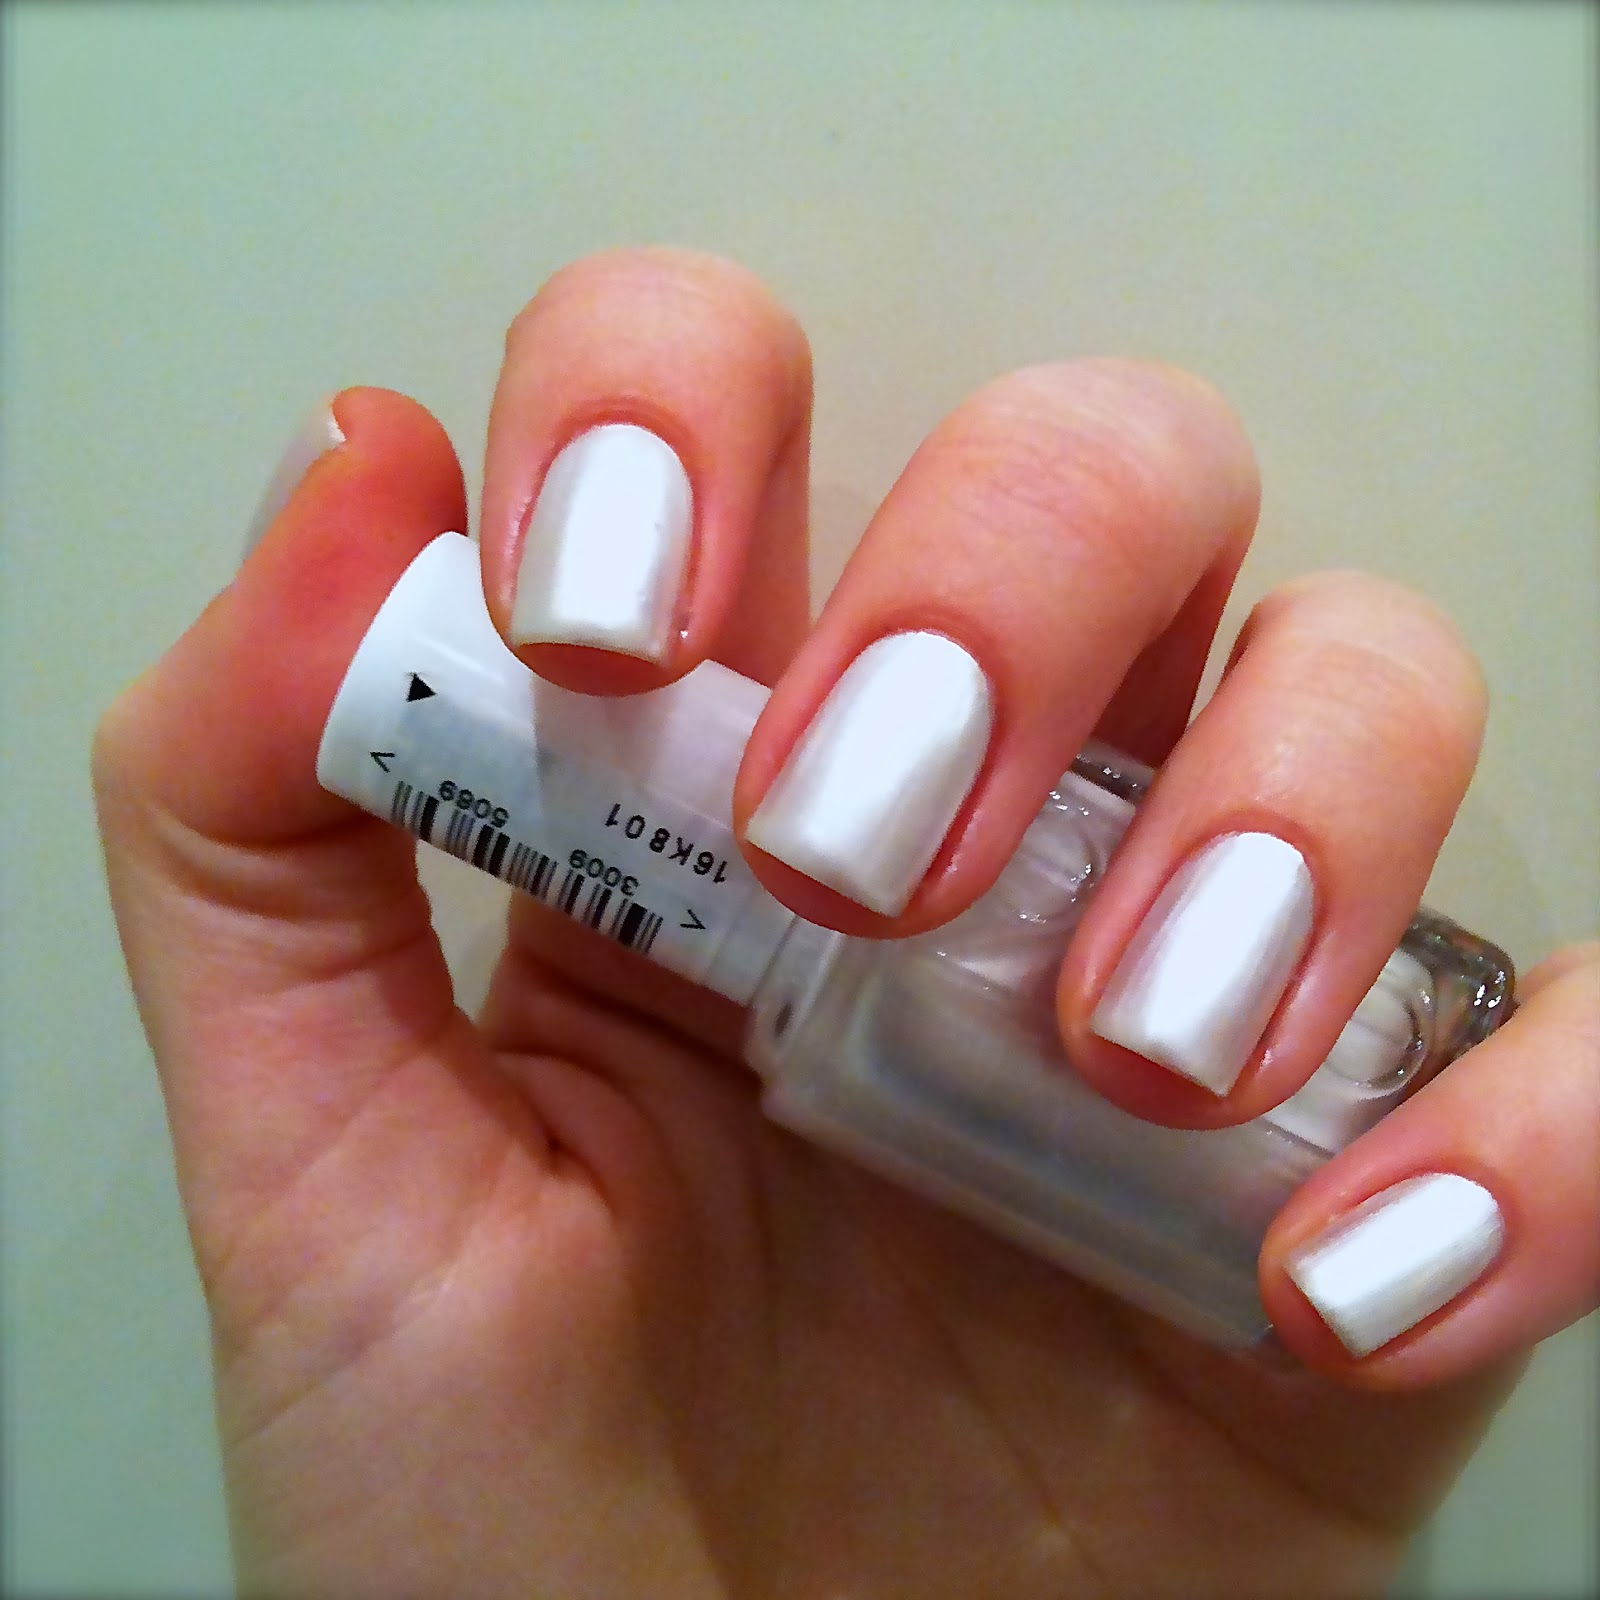 Nails Always Polished: Essie Pearly White